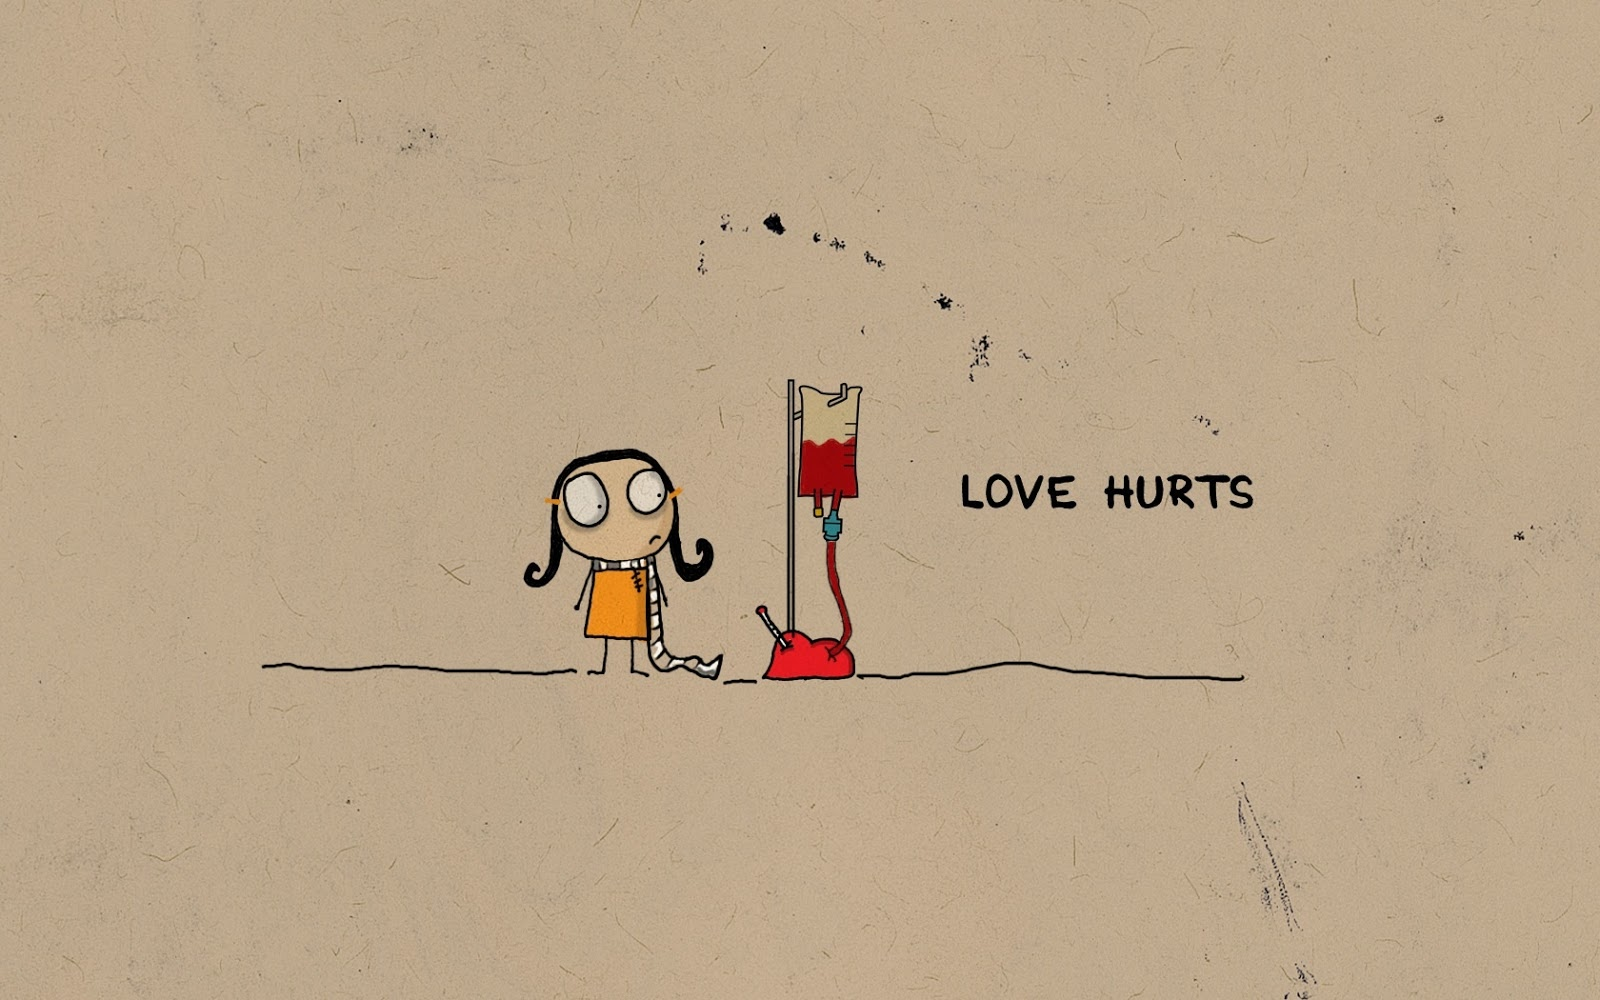 pain of love hurts quotes images for sad heart pixhome